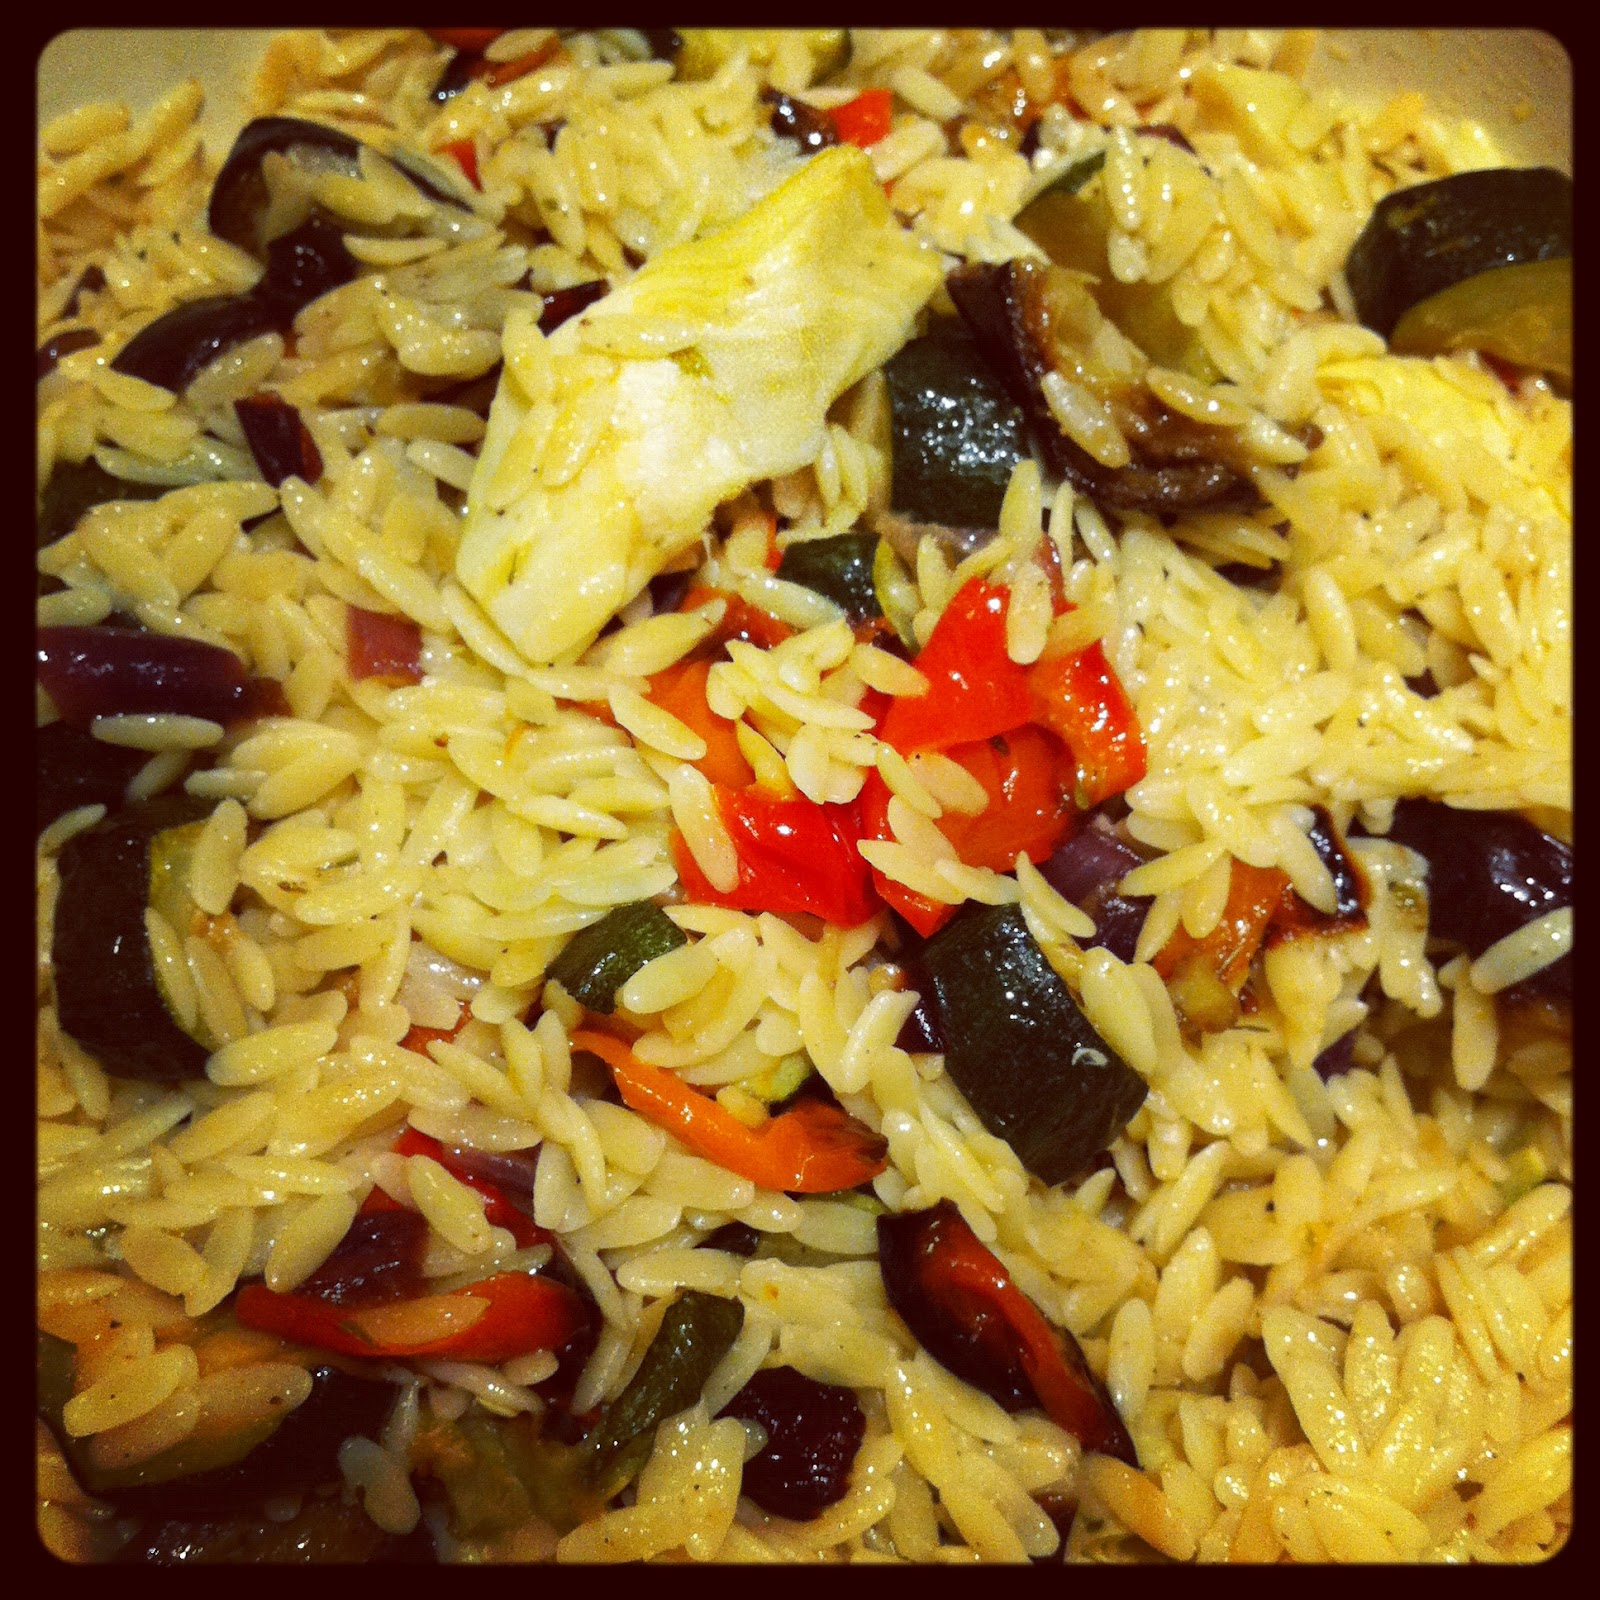 Orzo+with+Roasted+Vegetables.JPG